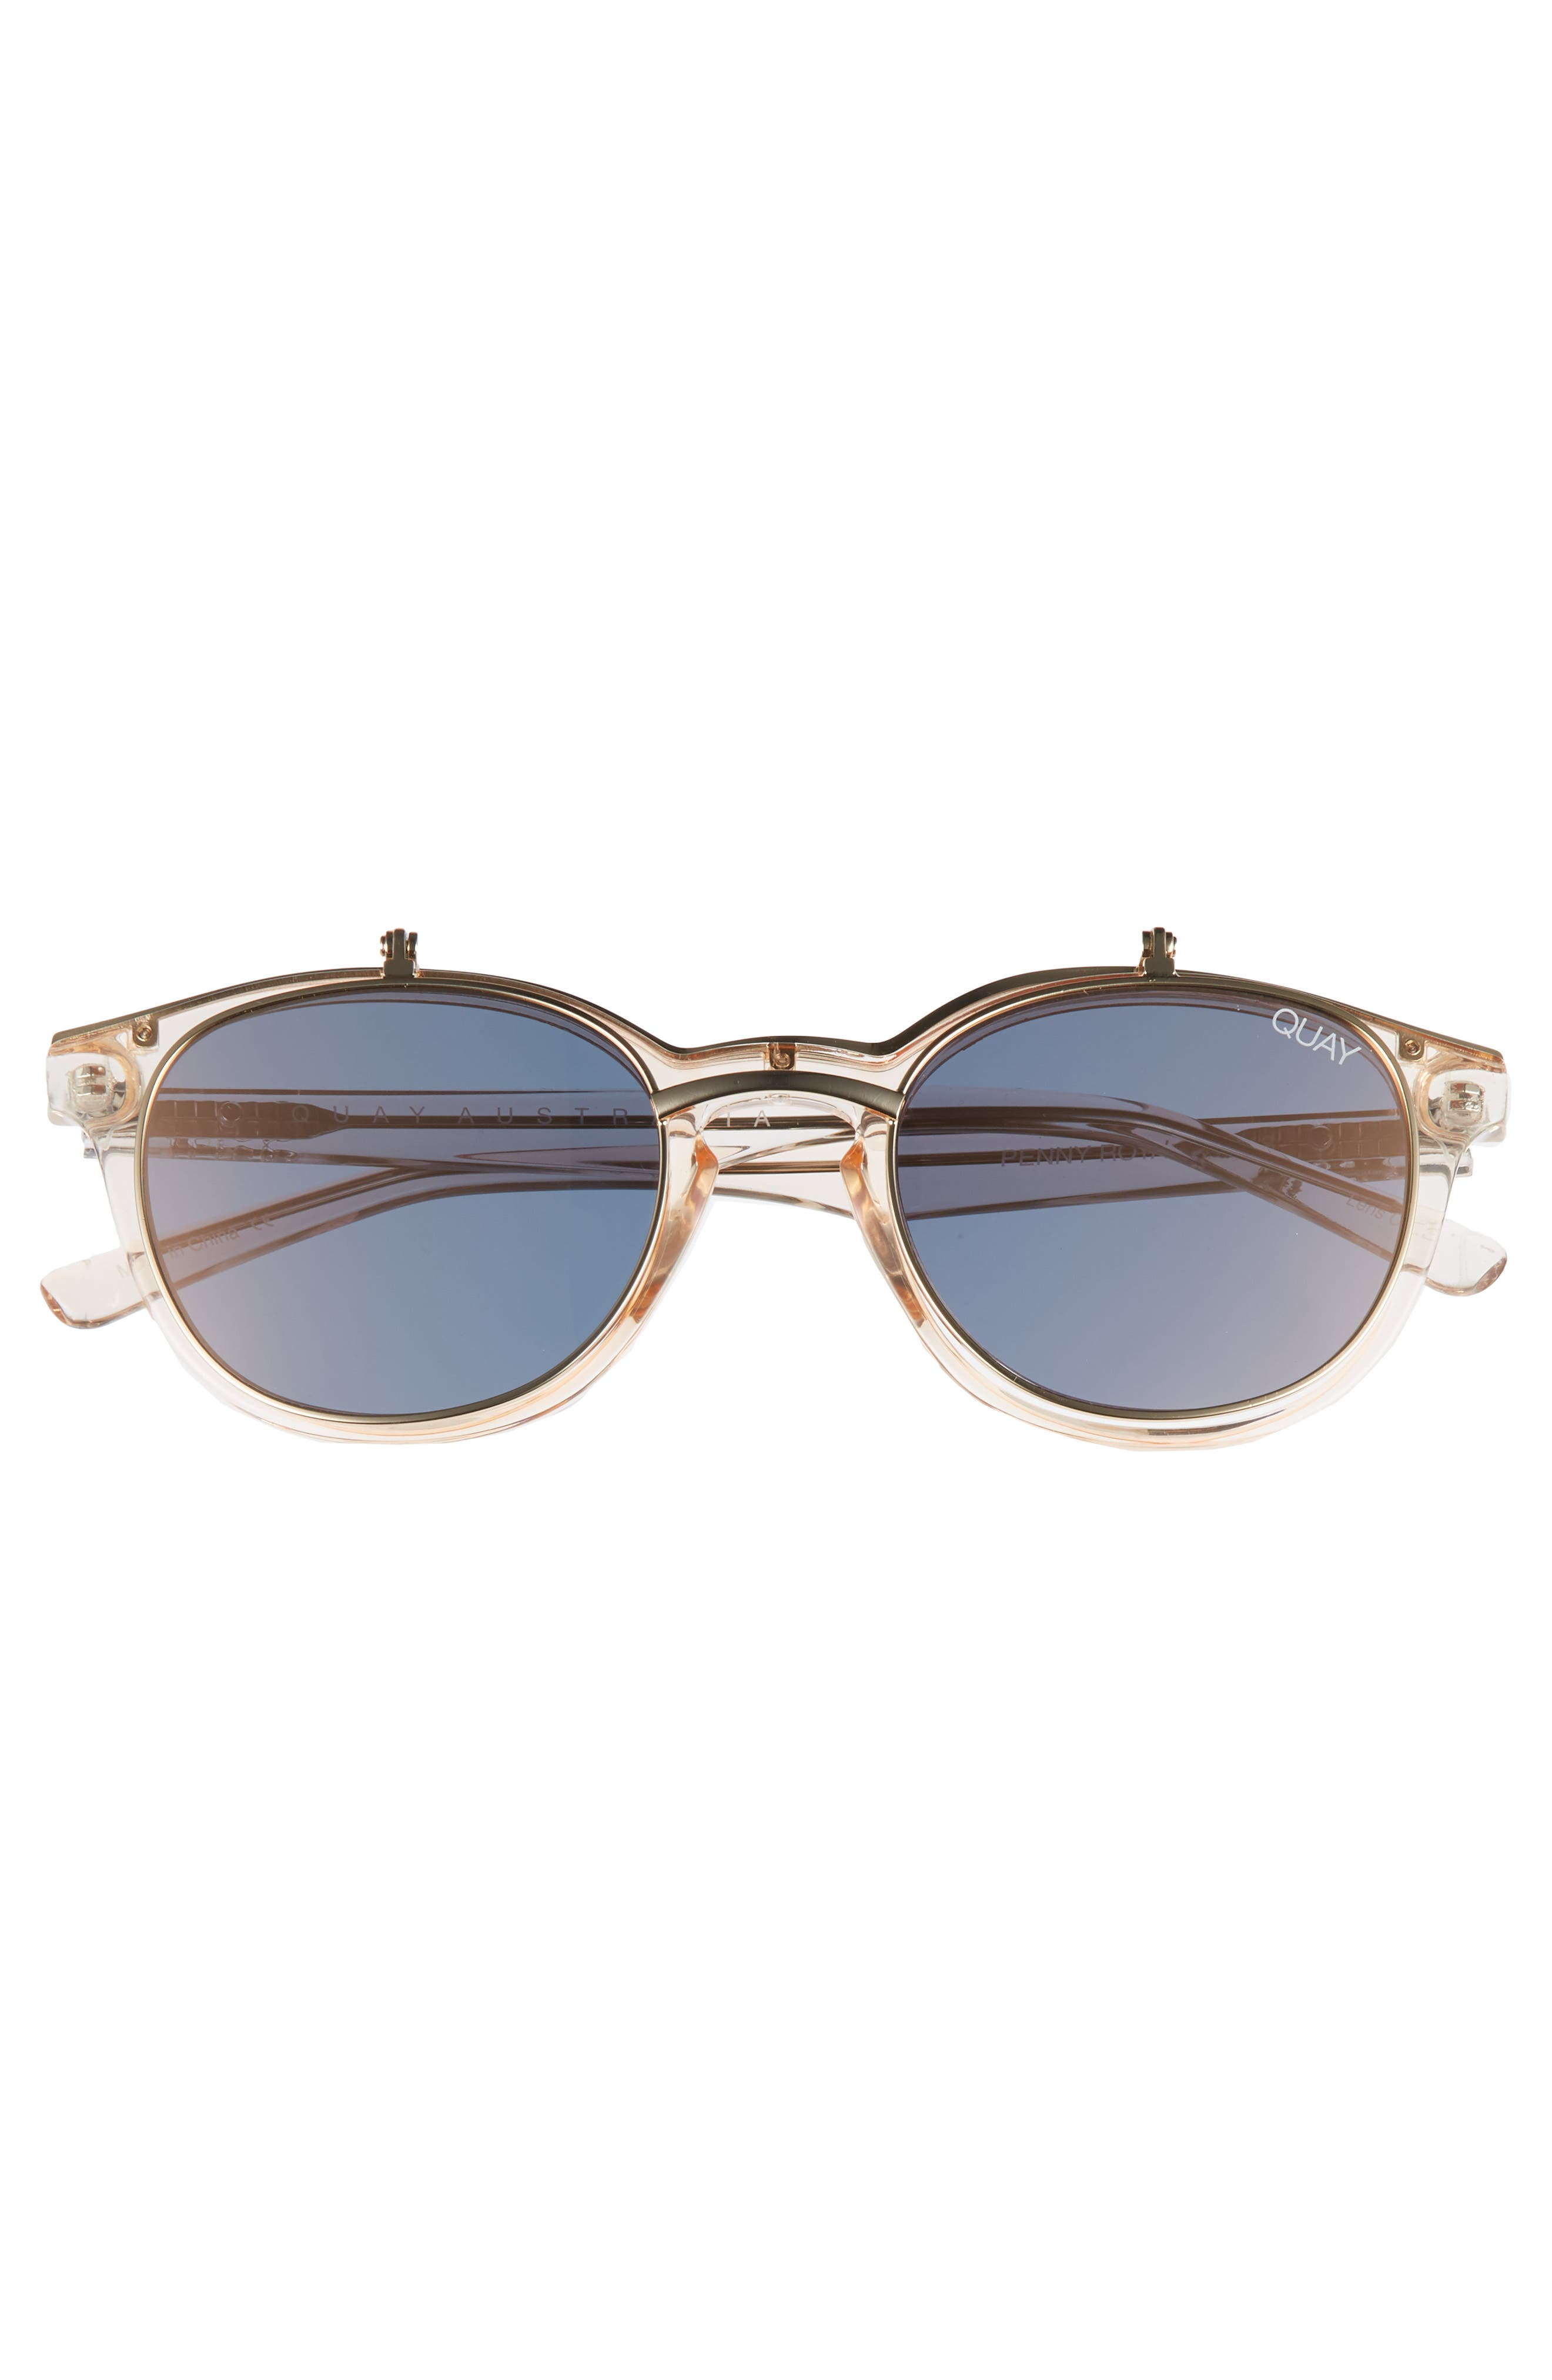 Penny Royal 55mm Flip-Up Round Sunglasses,                             Alternate thumbnail 3, color,                             Champagne/ Gold